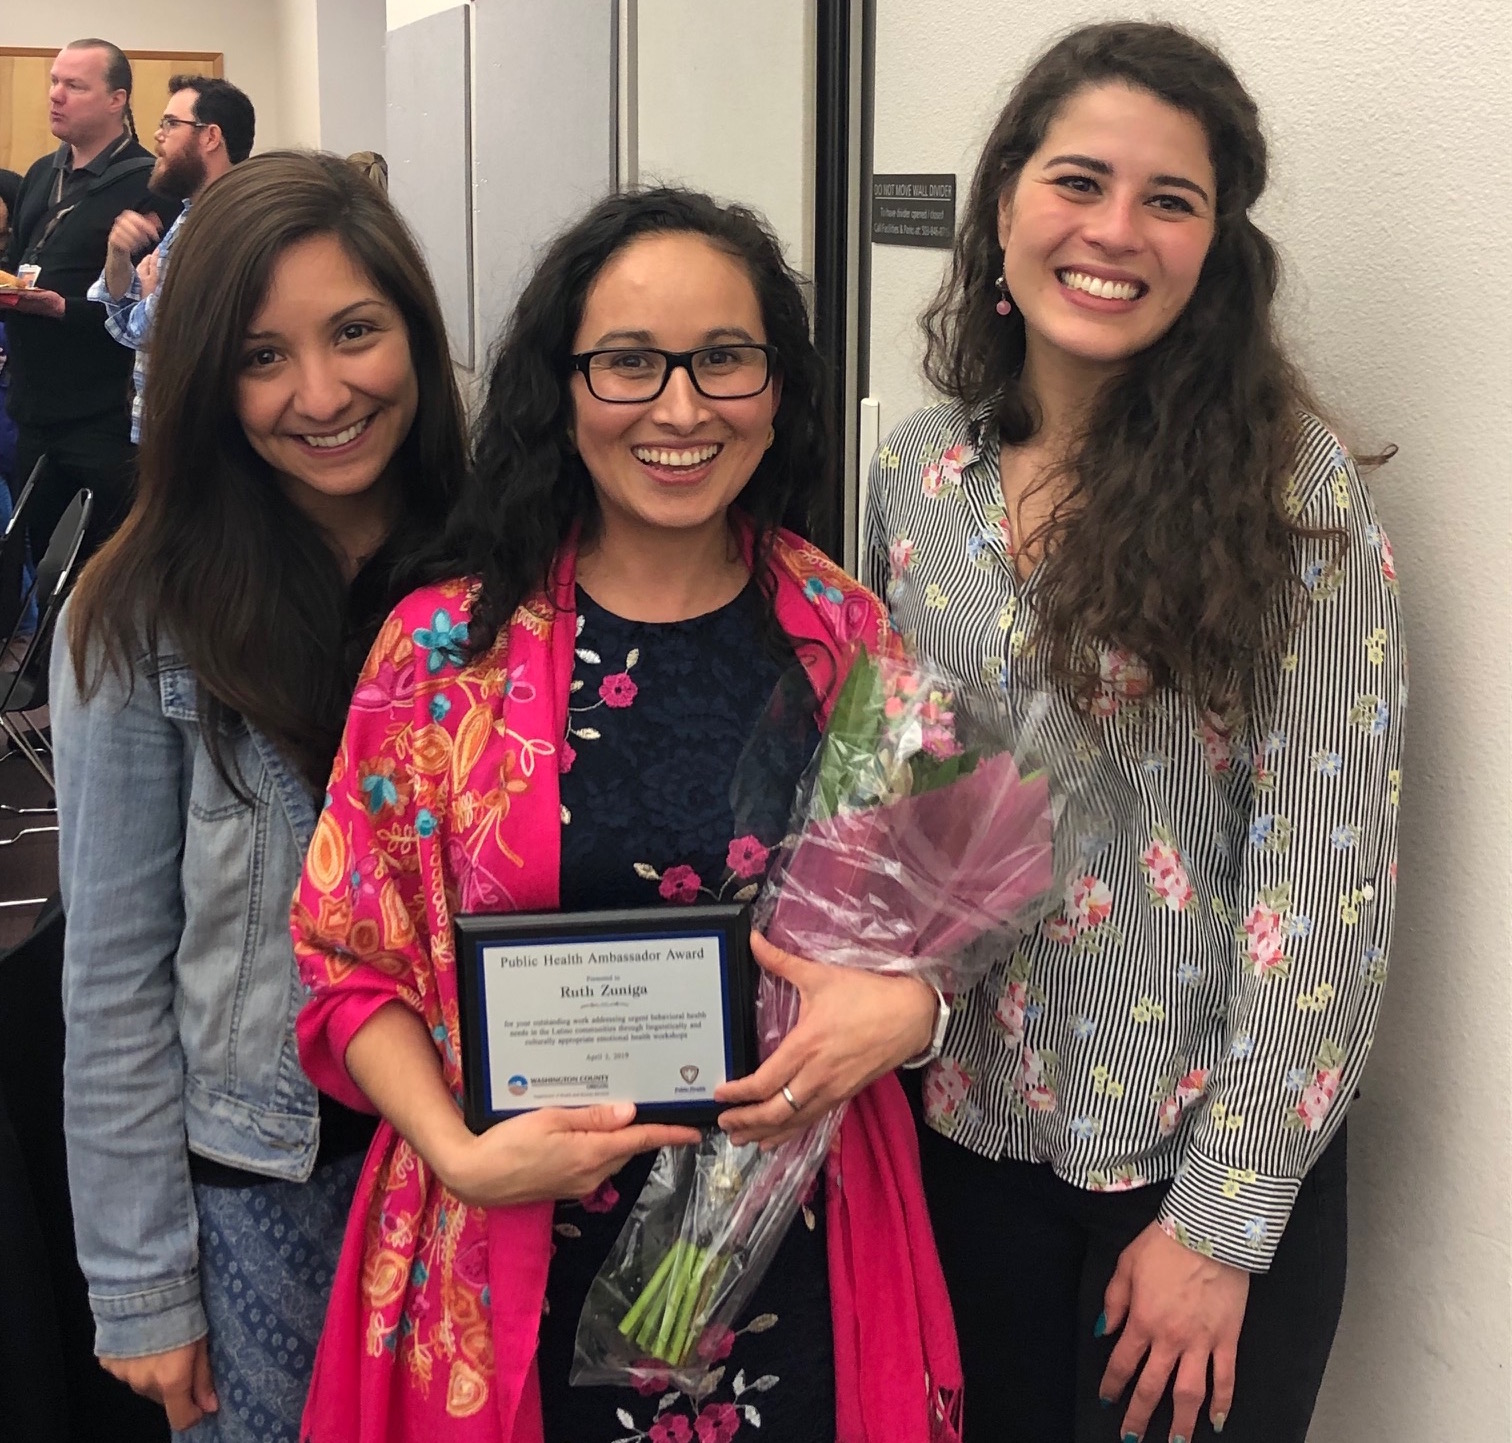 Assistant Professor Ruth Zúñiga Honored by Washington County